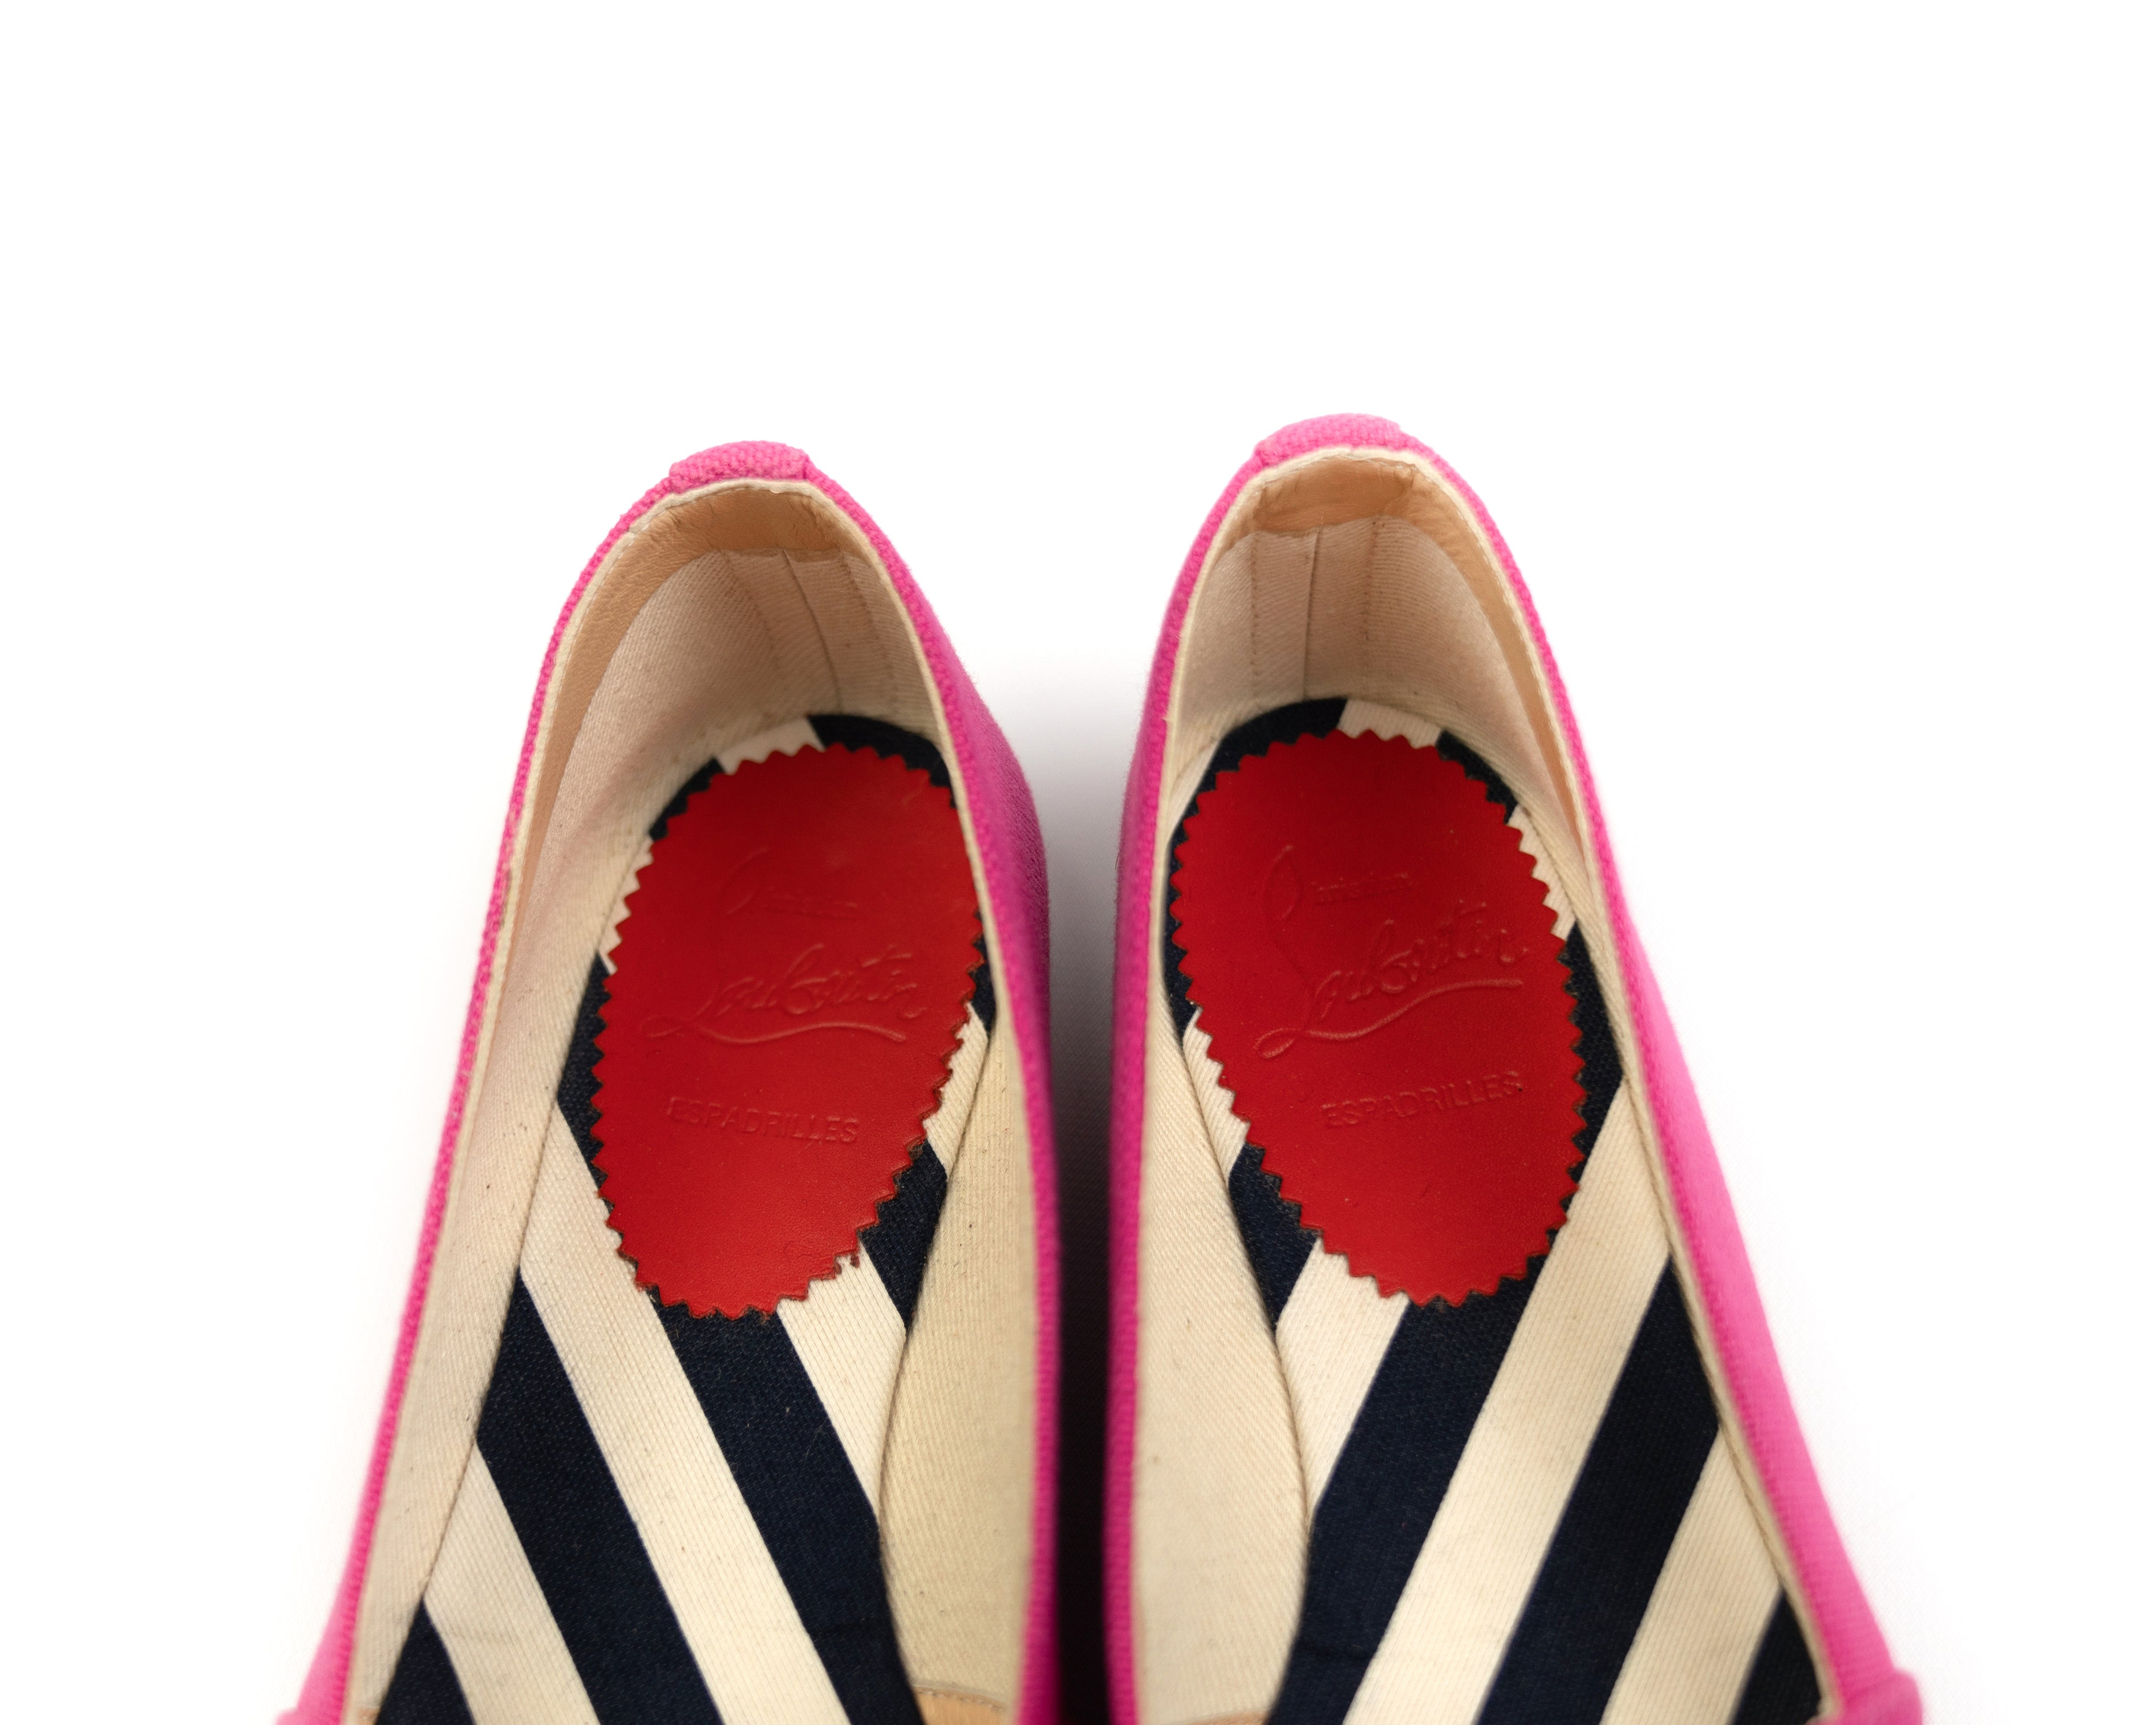 bd1b8d5f4460 Christian Louboutin Galia Espadrille Flats – Simply Chic Consignment